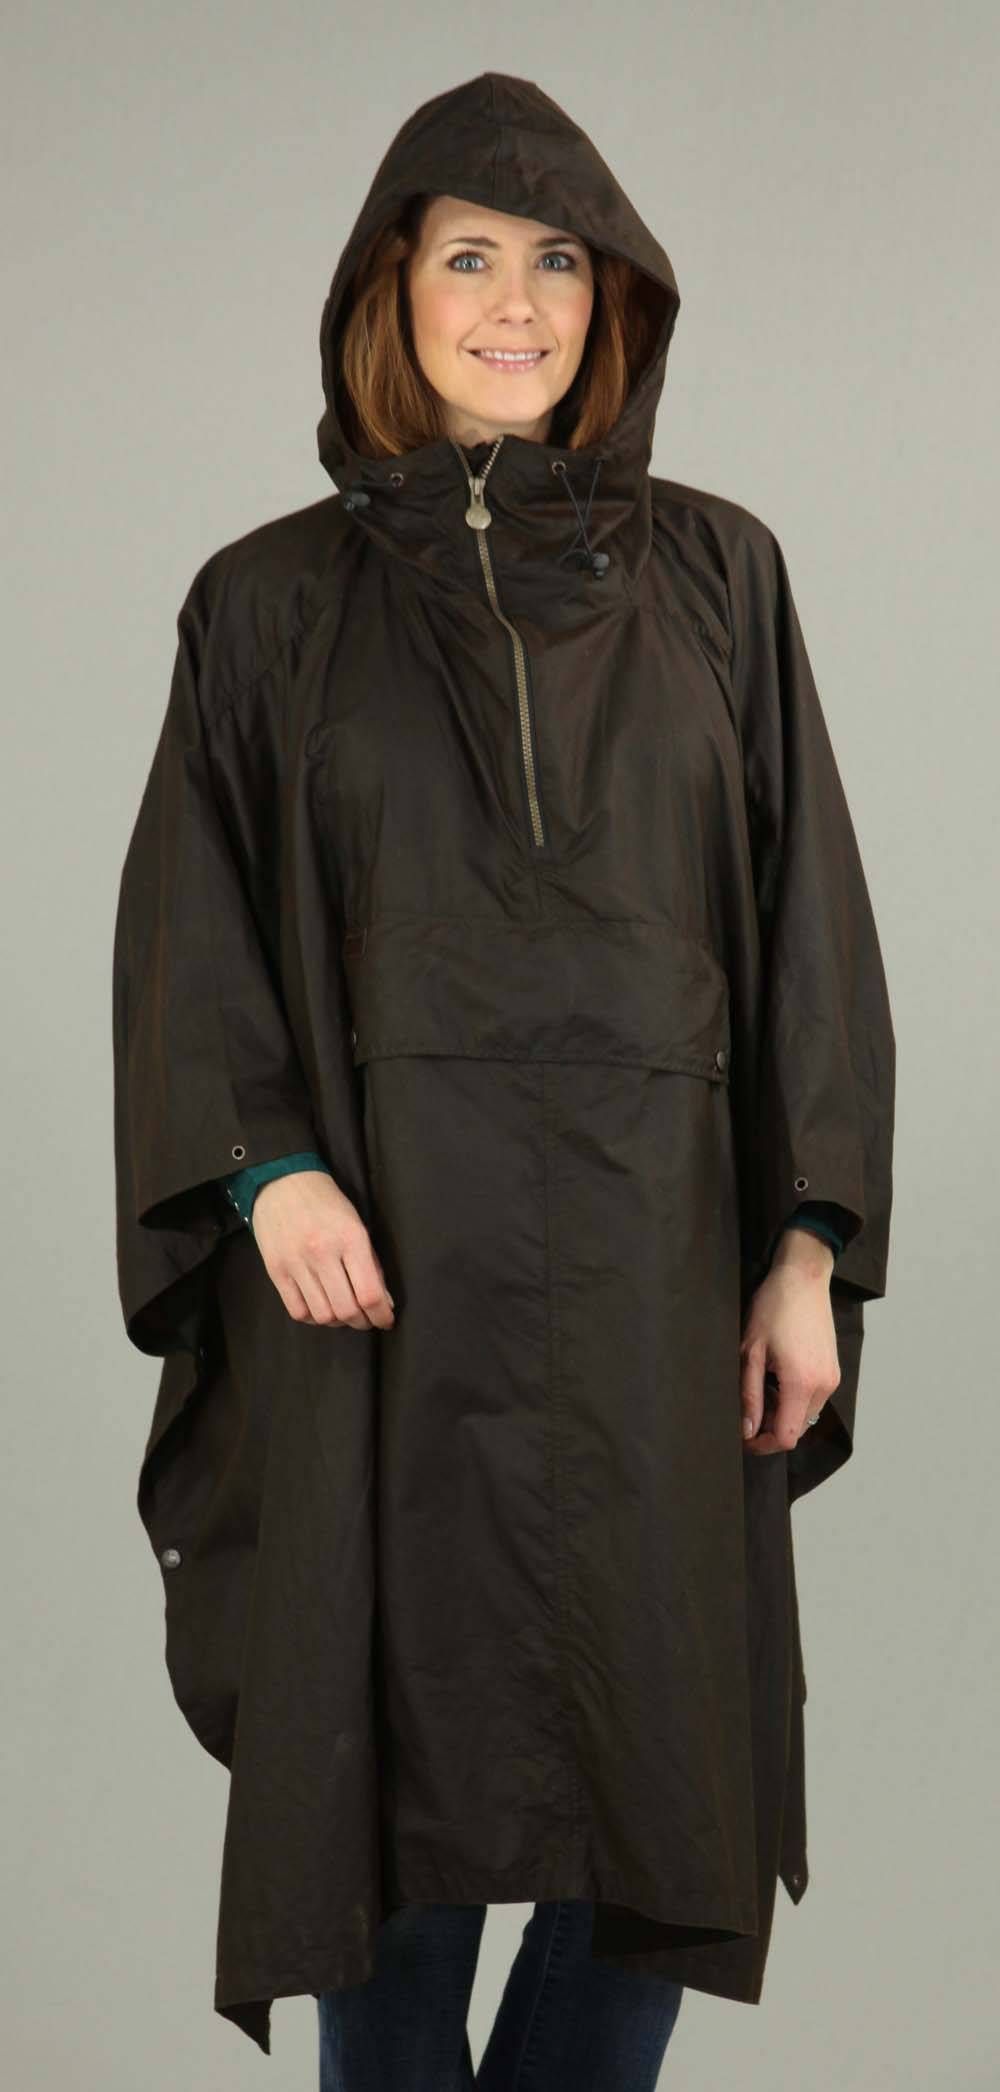 Outback Trading Unisex Packable Poncho